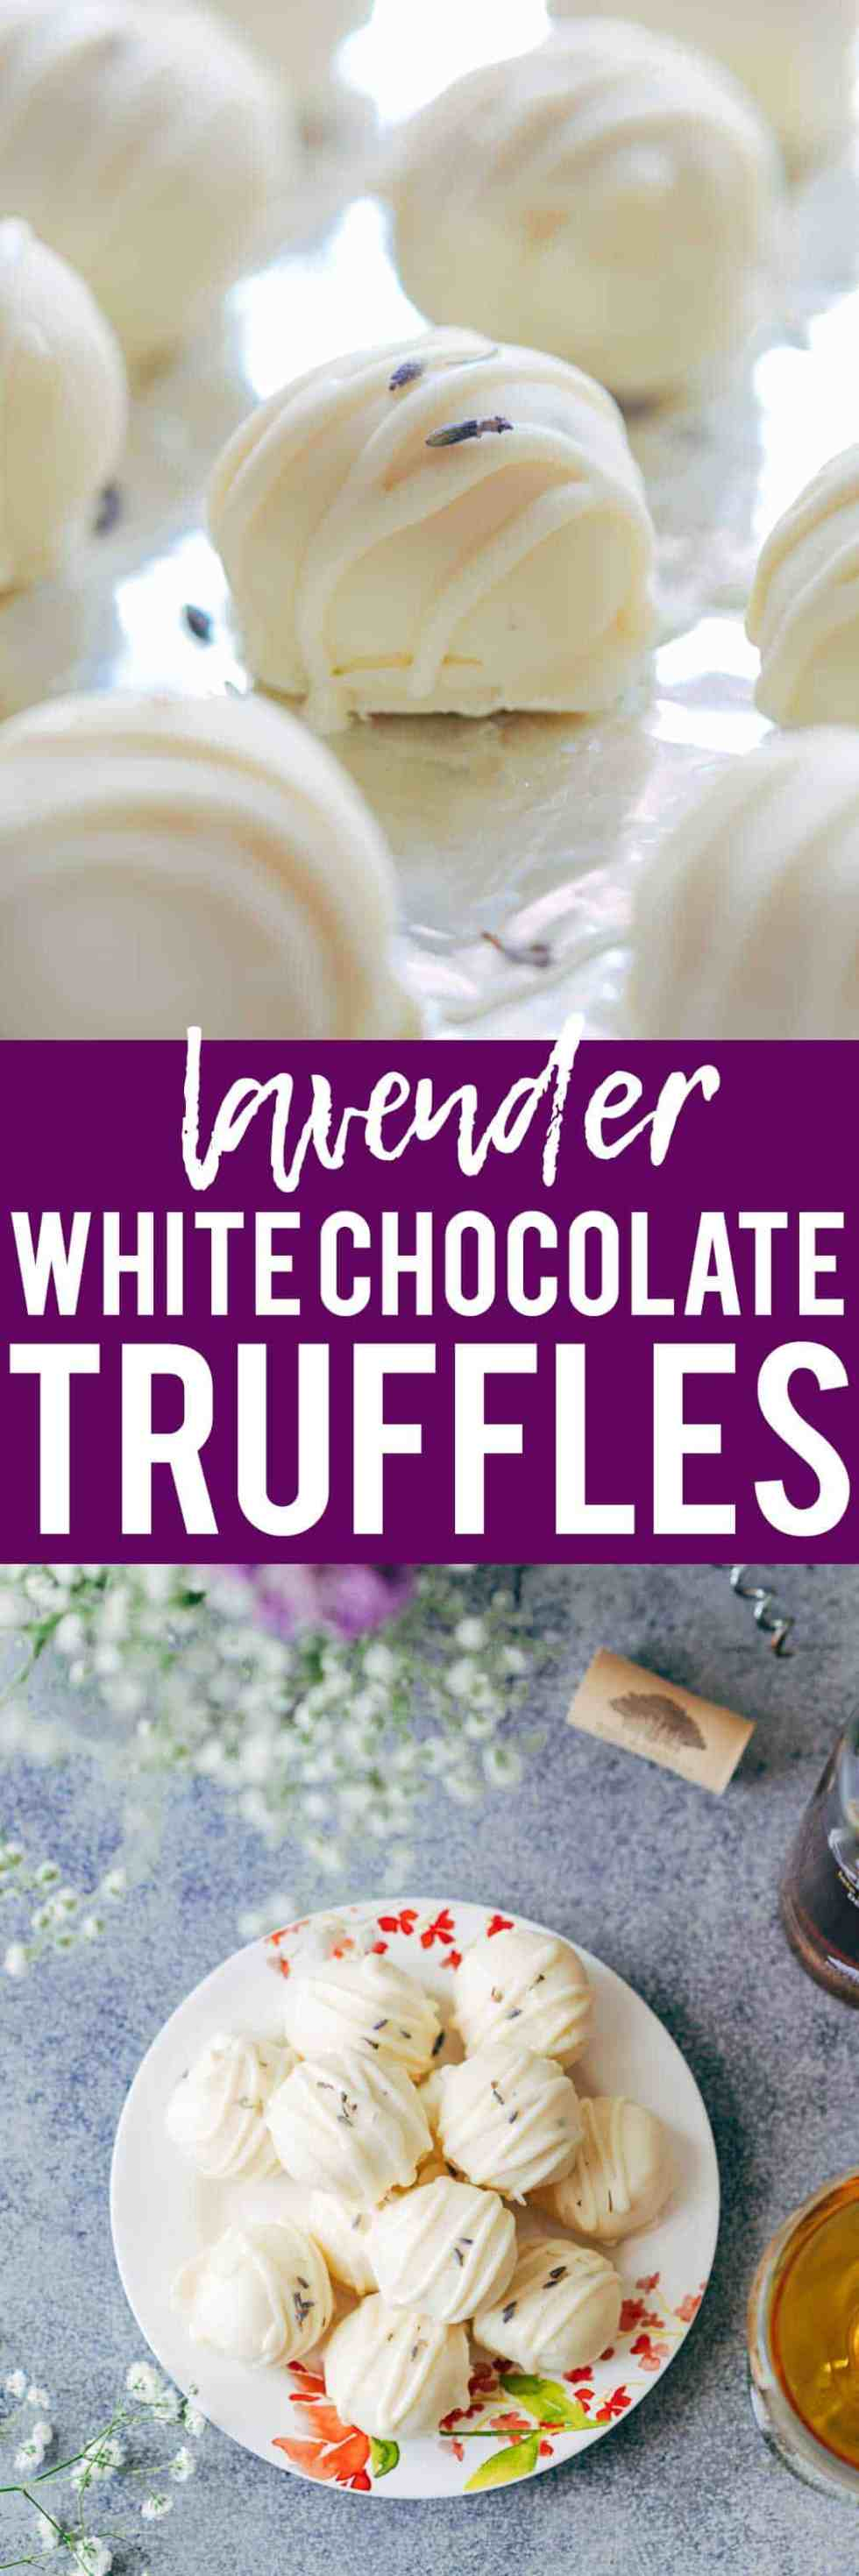 Lavender white chocolate truffles are fragrant, creamy, elegant white chocolate bites that are perfect for the holidays! Use them to serve as mini desserts, or for Christmas gifting.Perfect for thanksgiving, hanukkah, christmas and New Years!